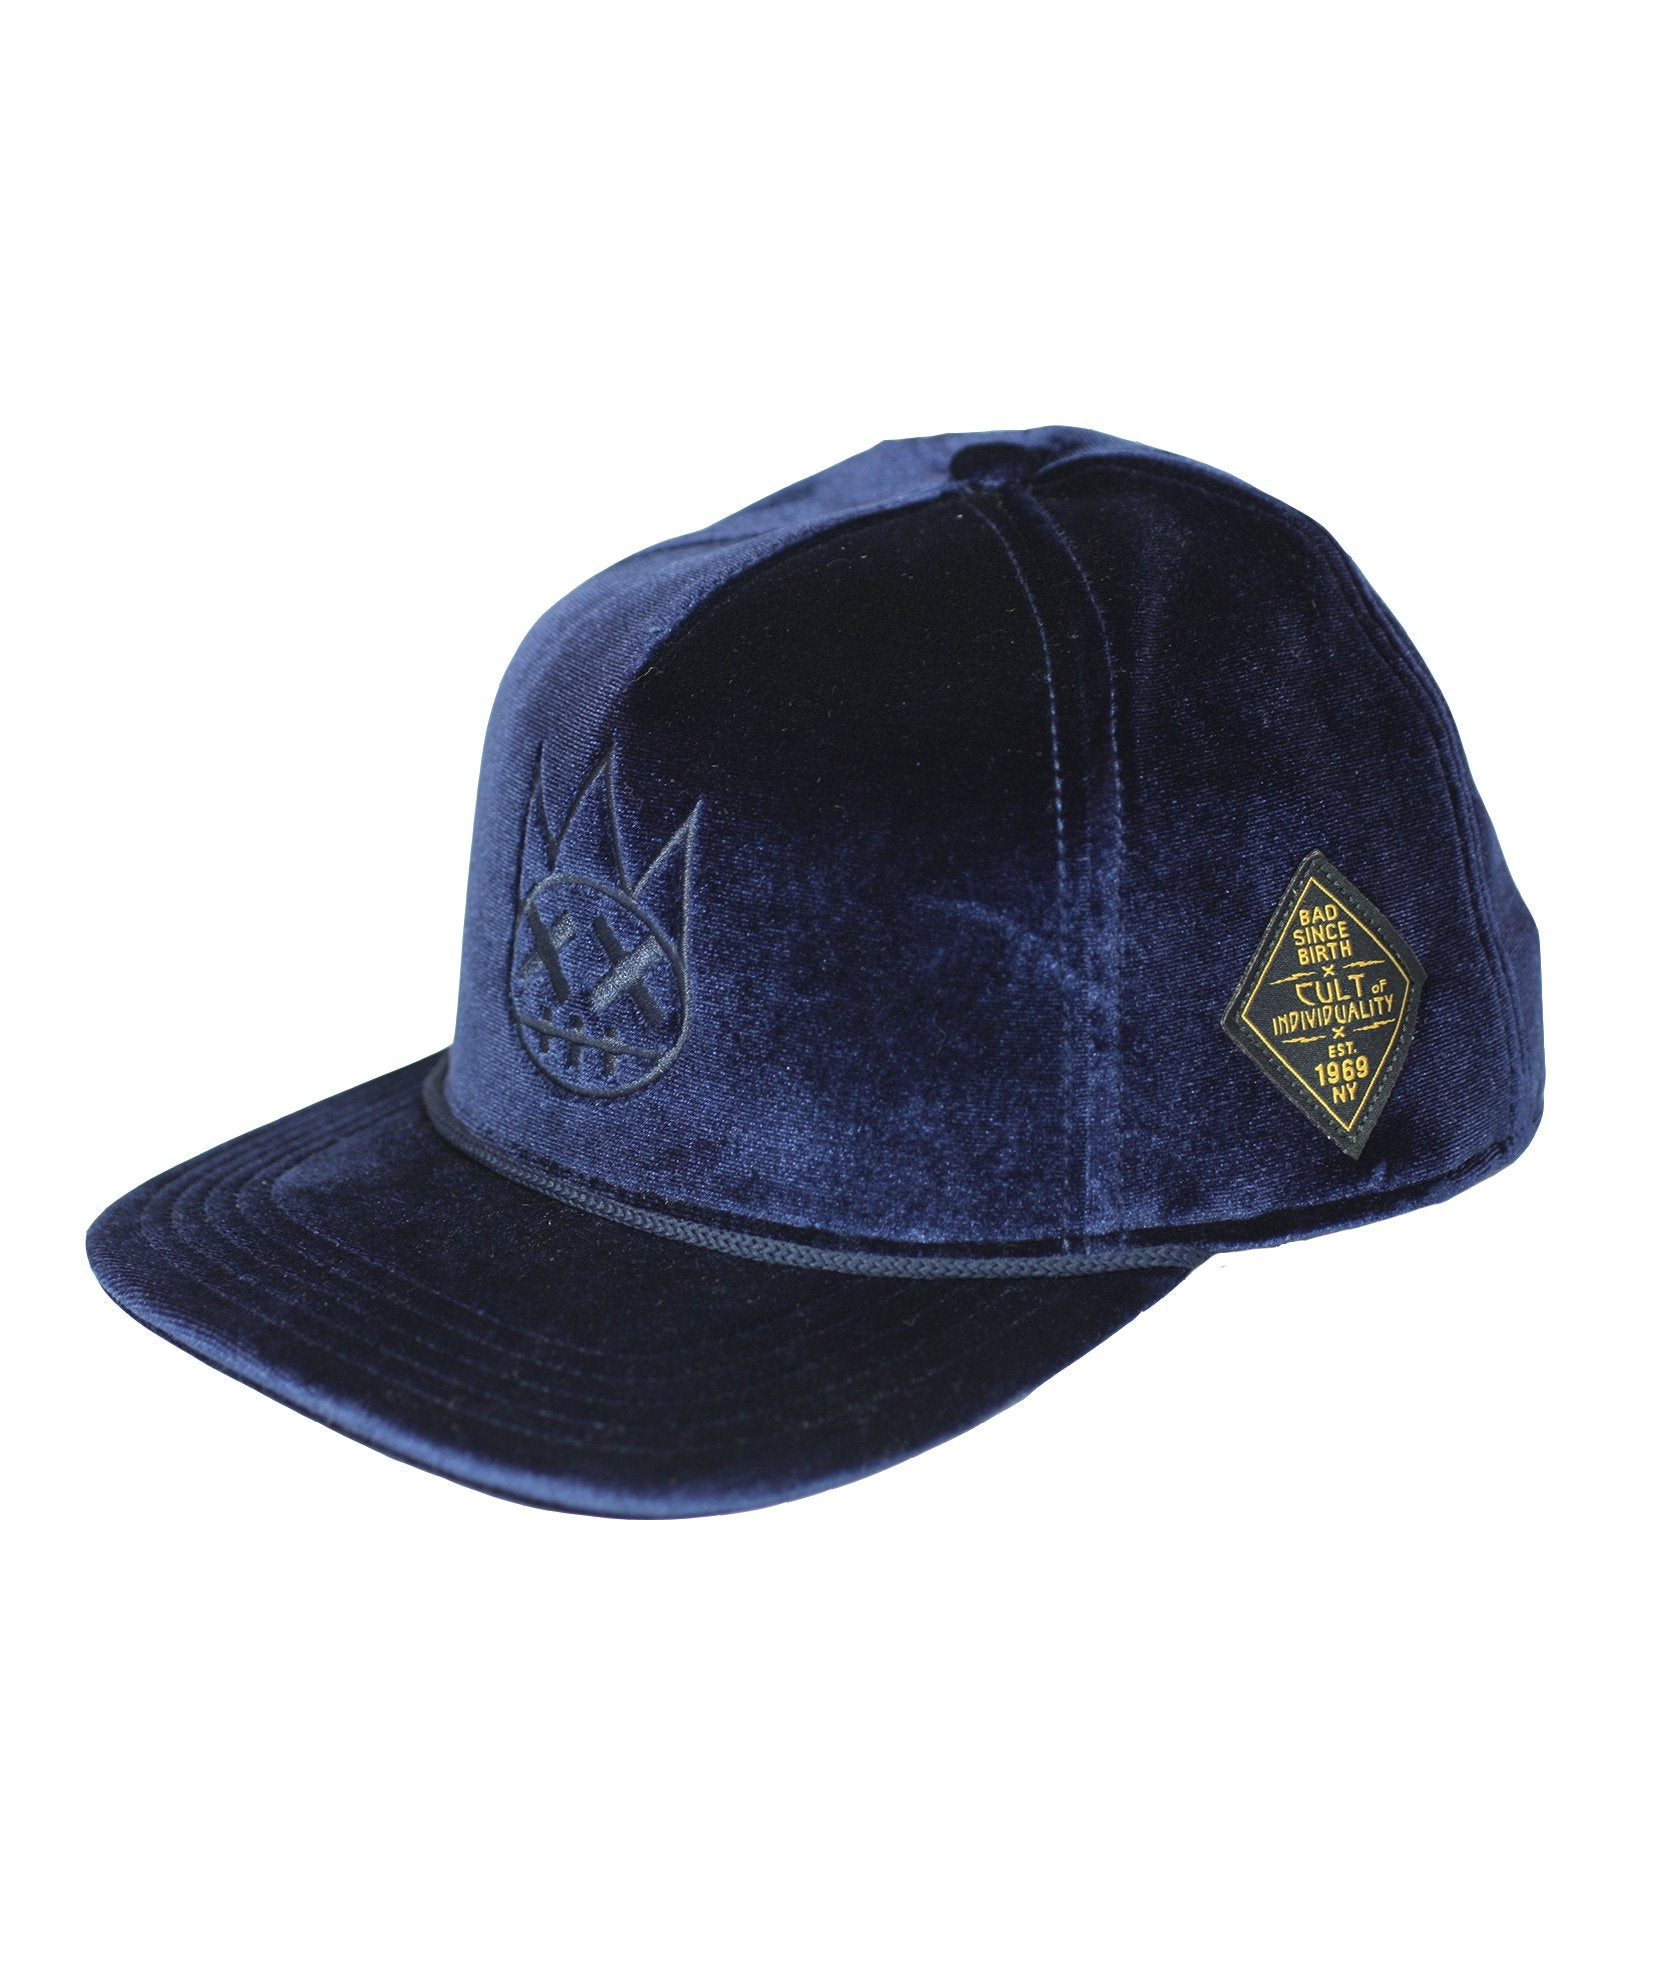 Men's Velour Trucker Hat in Hellraiser